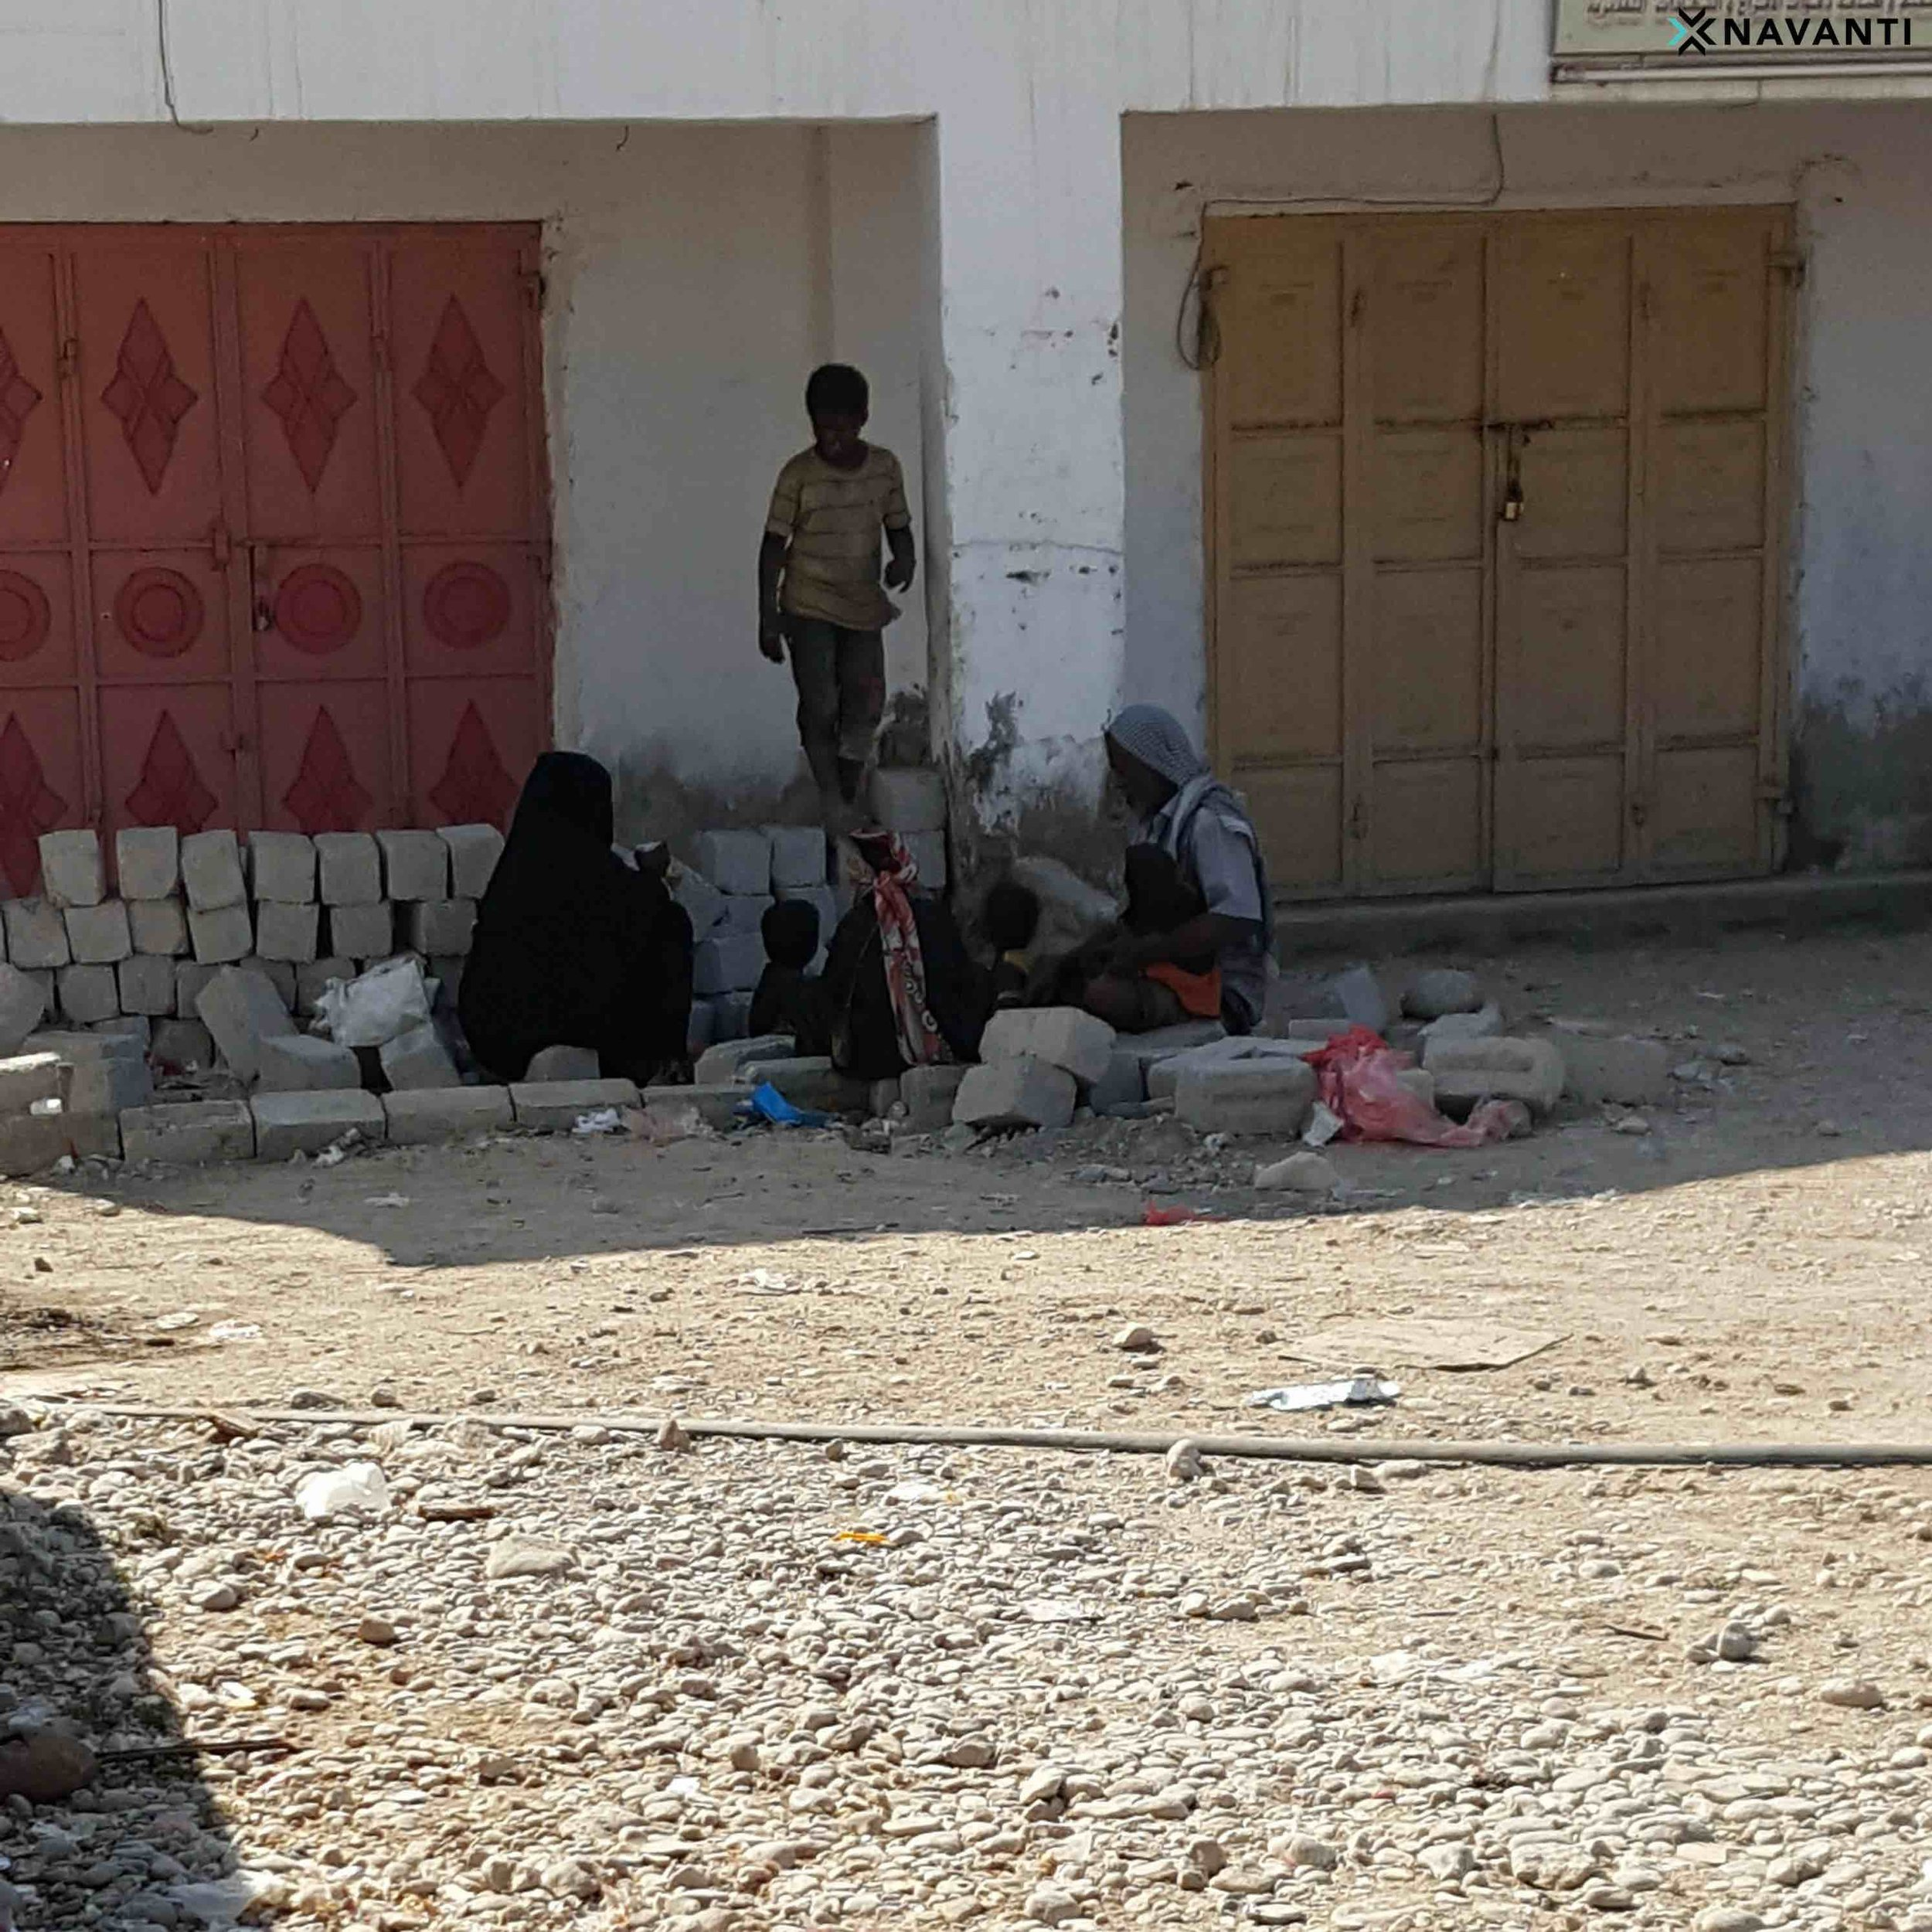 Family eating patrons' leftovers from nearby restaurant in Sayhut, al-Mahra. Source: Navanti